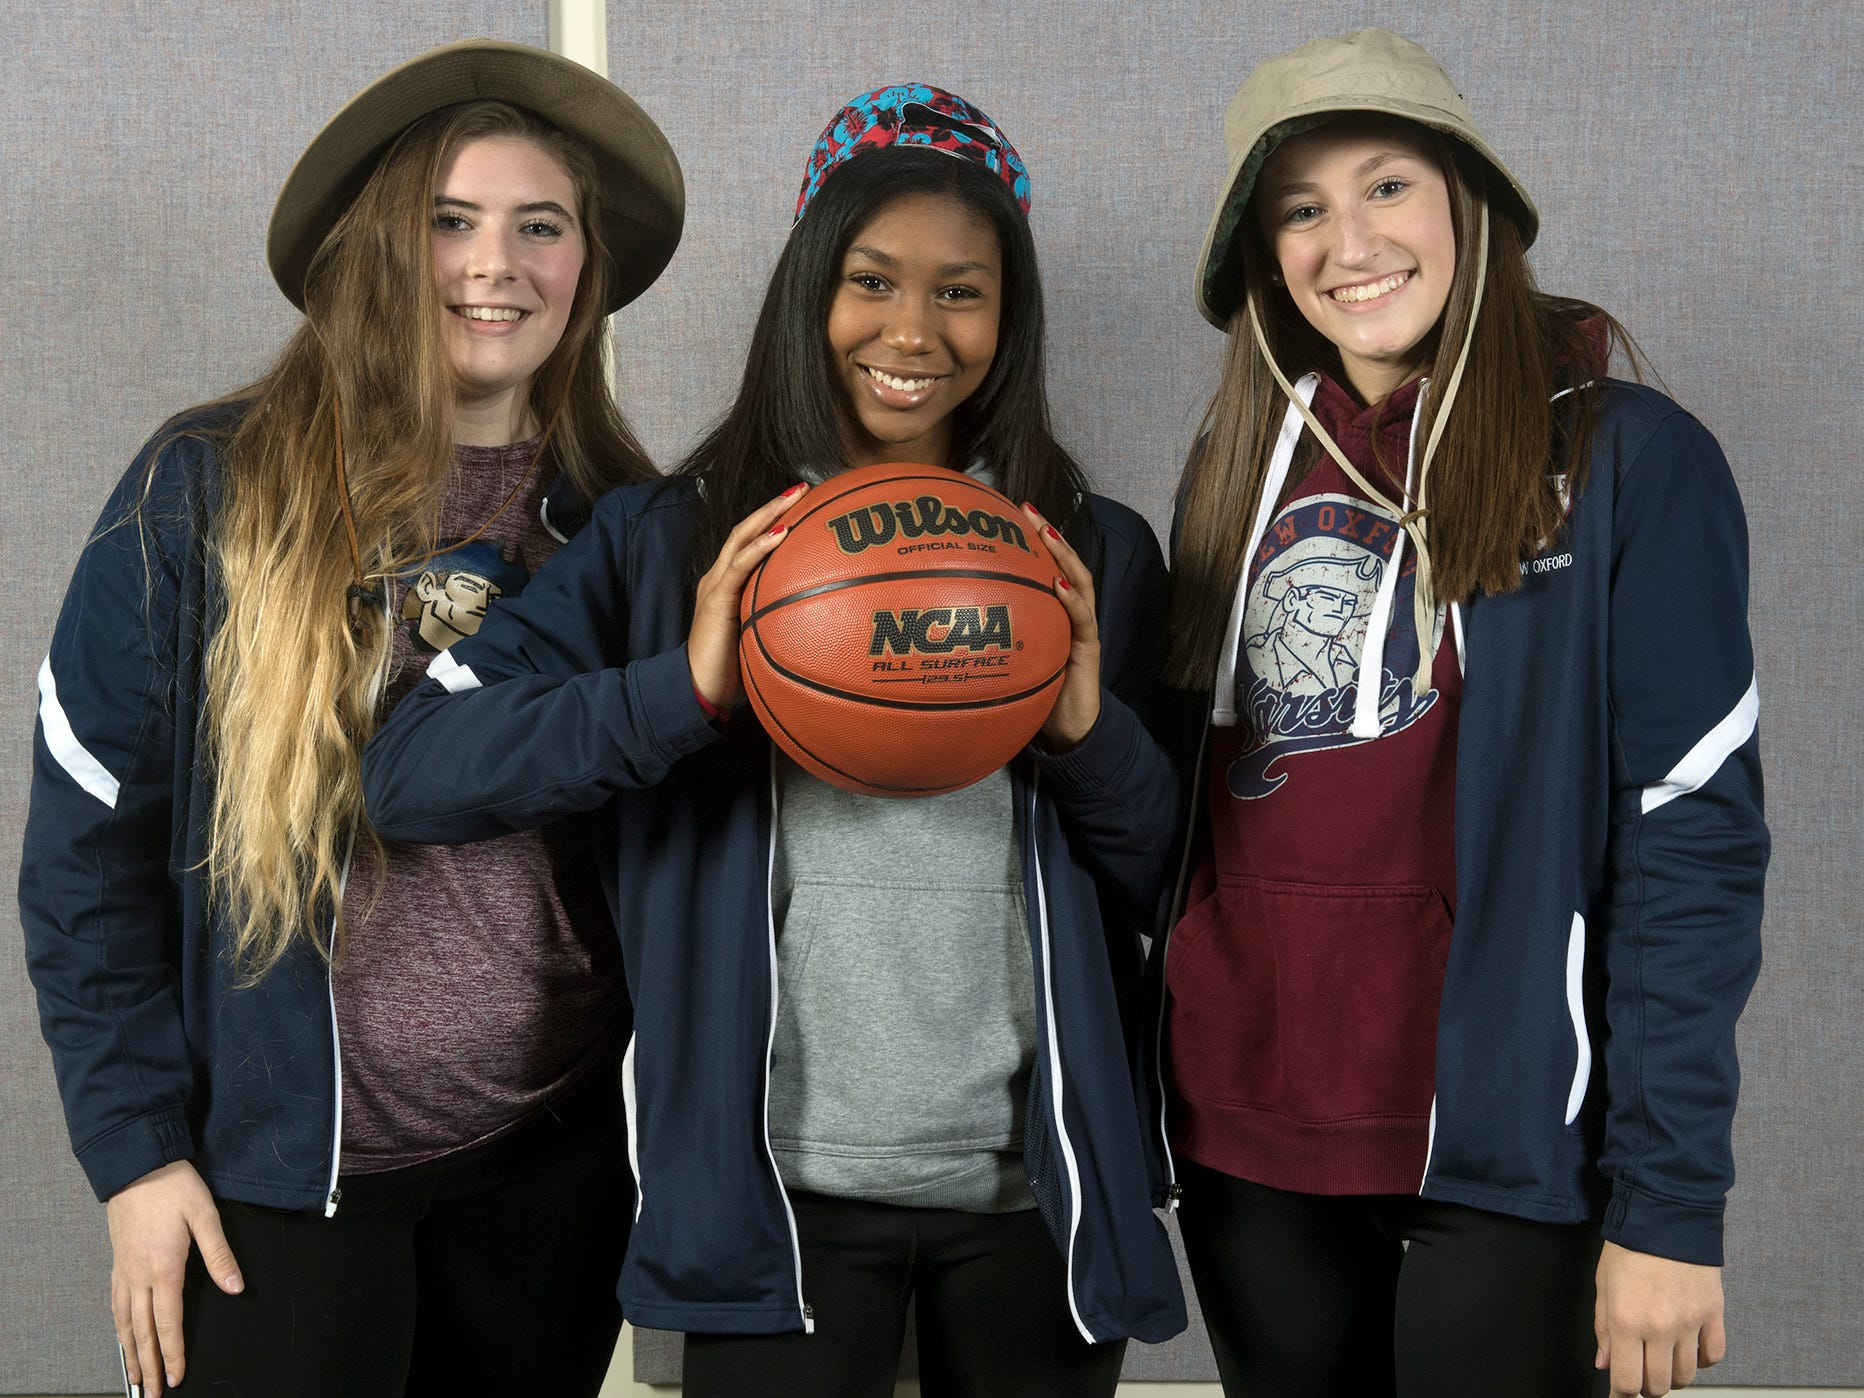 From the left, Natalie Slusser, Jayla Brown, and Maddy Ross, of the New Oxford girls basketball team, pose during the 2018-19 GameTimePa YAIAA Winter Media Day Sunday November 11, 2018.